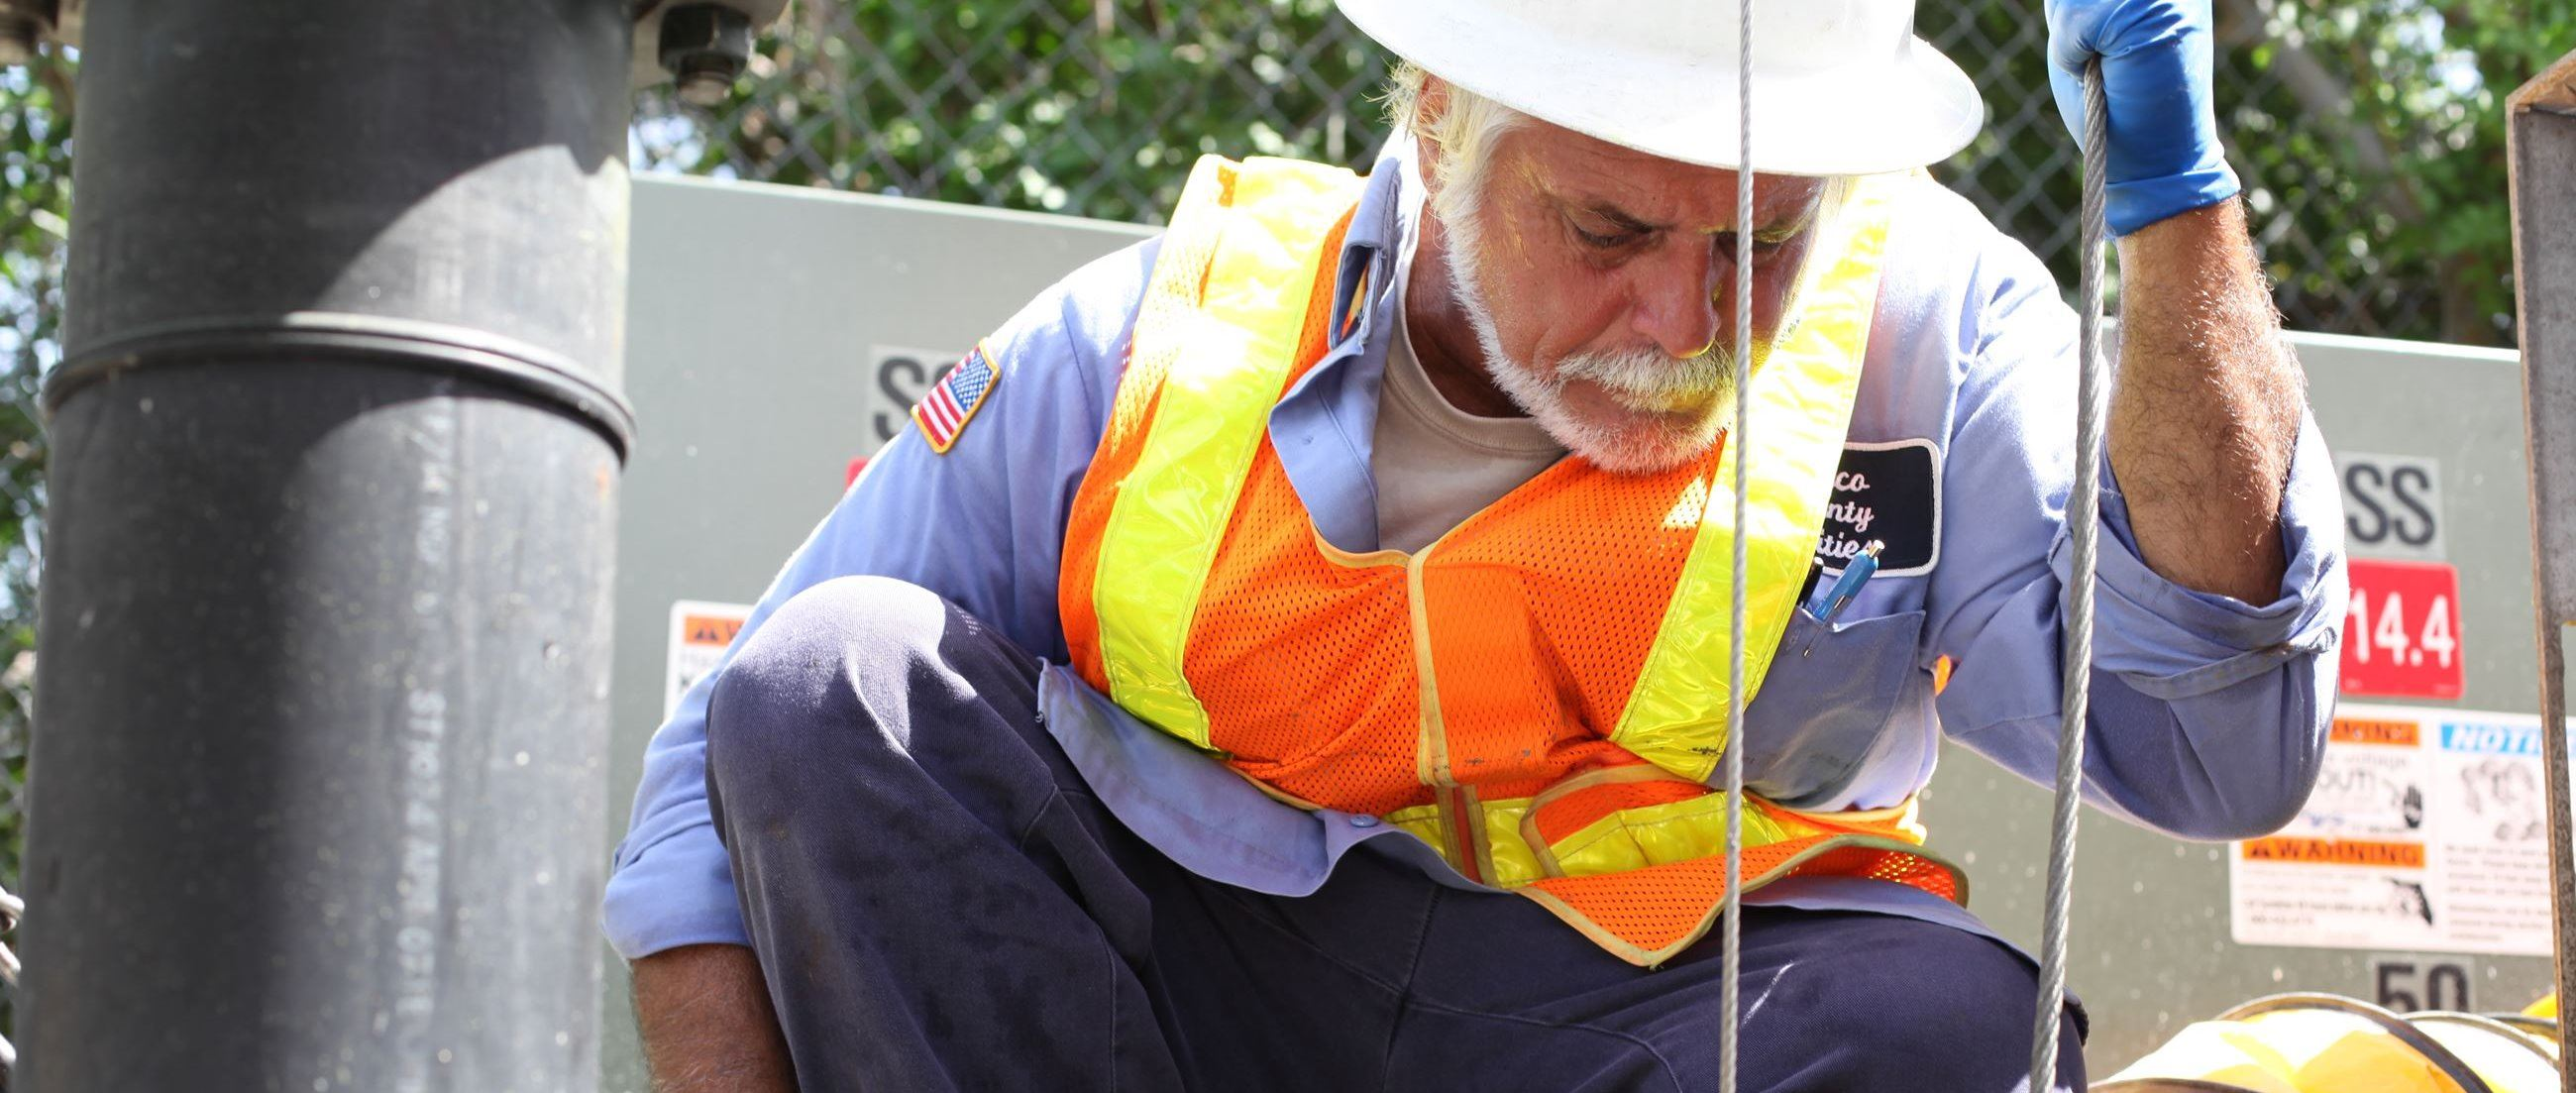 Utilities   Pasco County, FL - Official Website